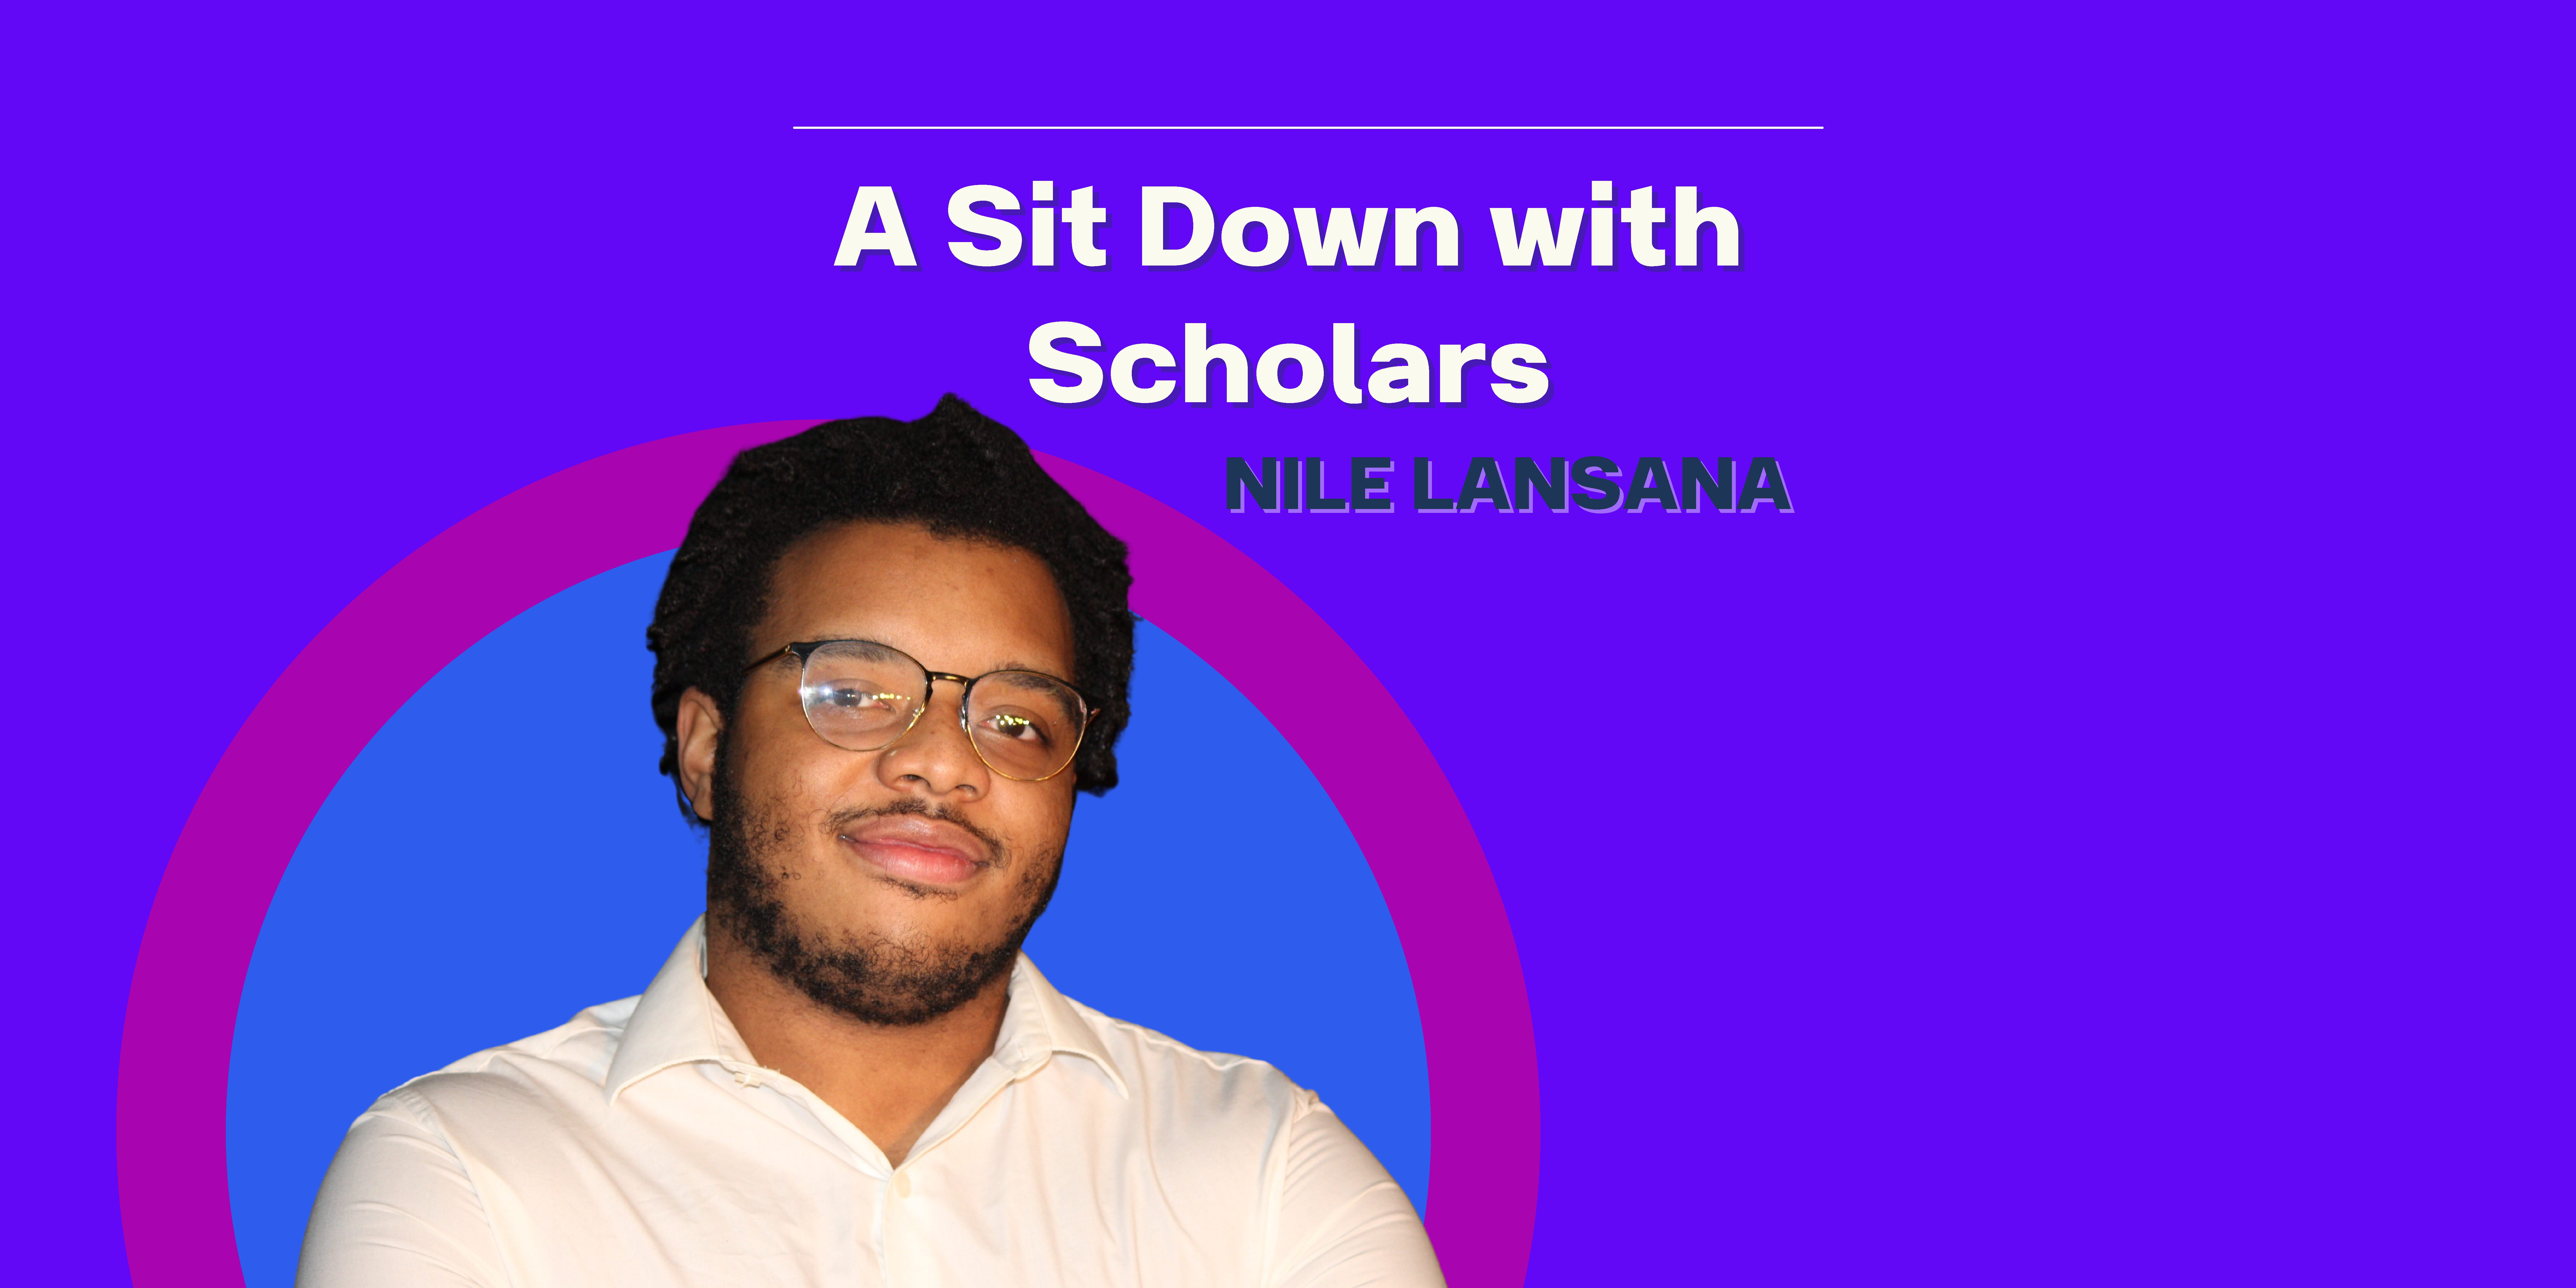 """A Sit Down with Scholars: Episode 4 """"A Sit Down with a Gap Year Student"""""""